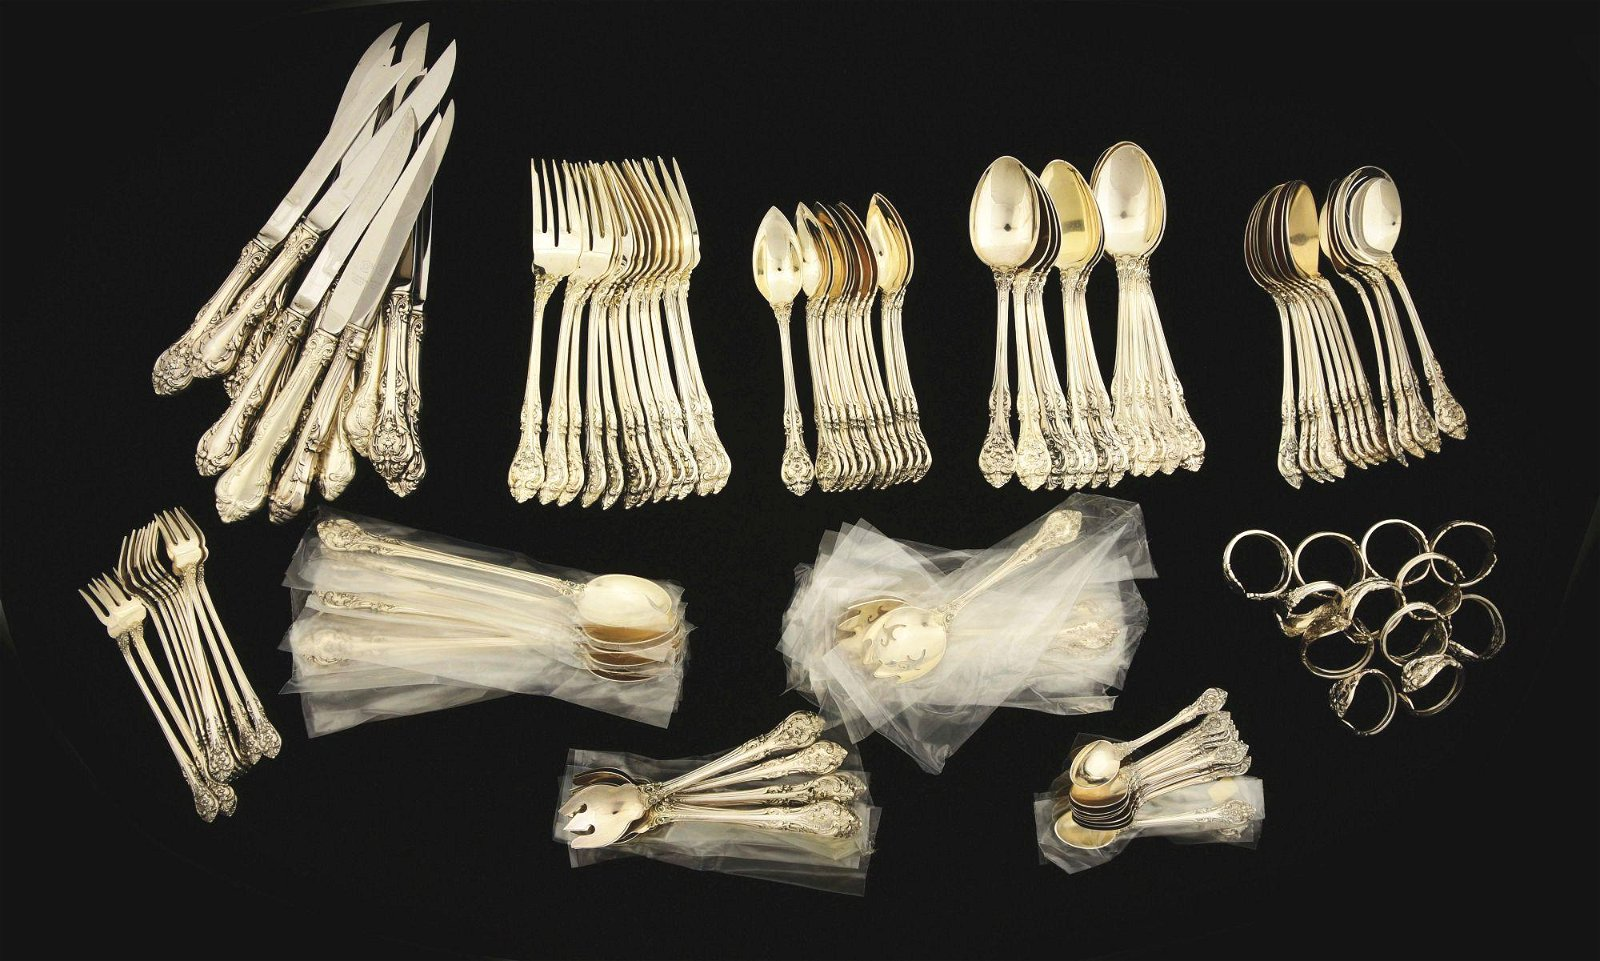 LOT OF 122: GORHAM STERLING 12 PLACE SETTING KING